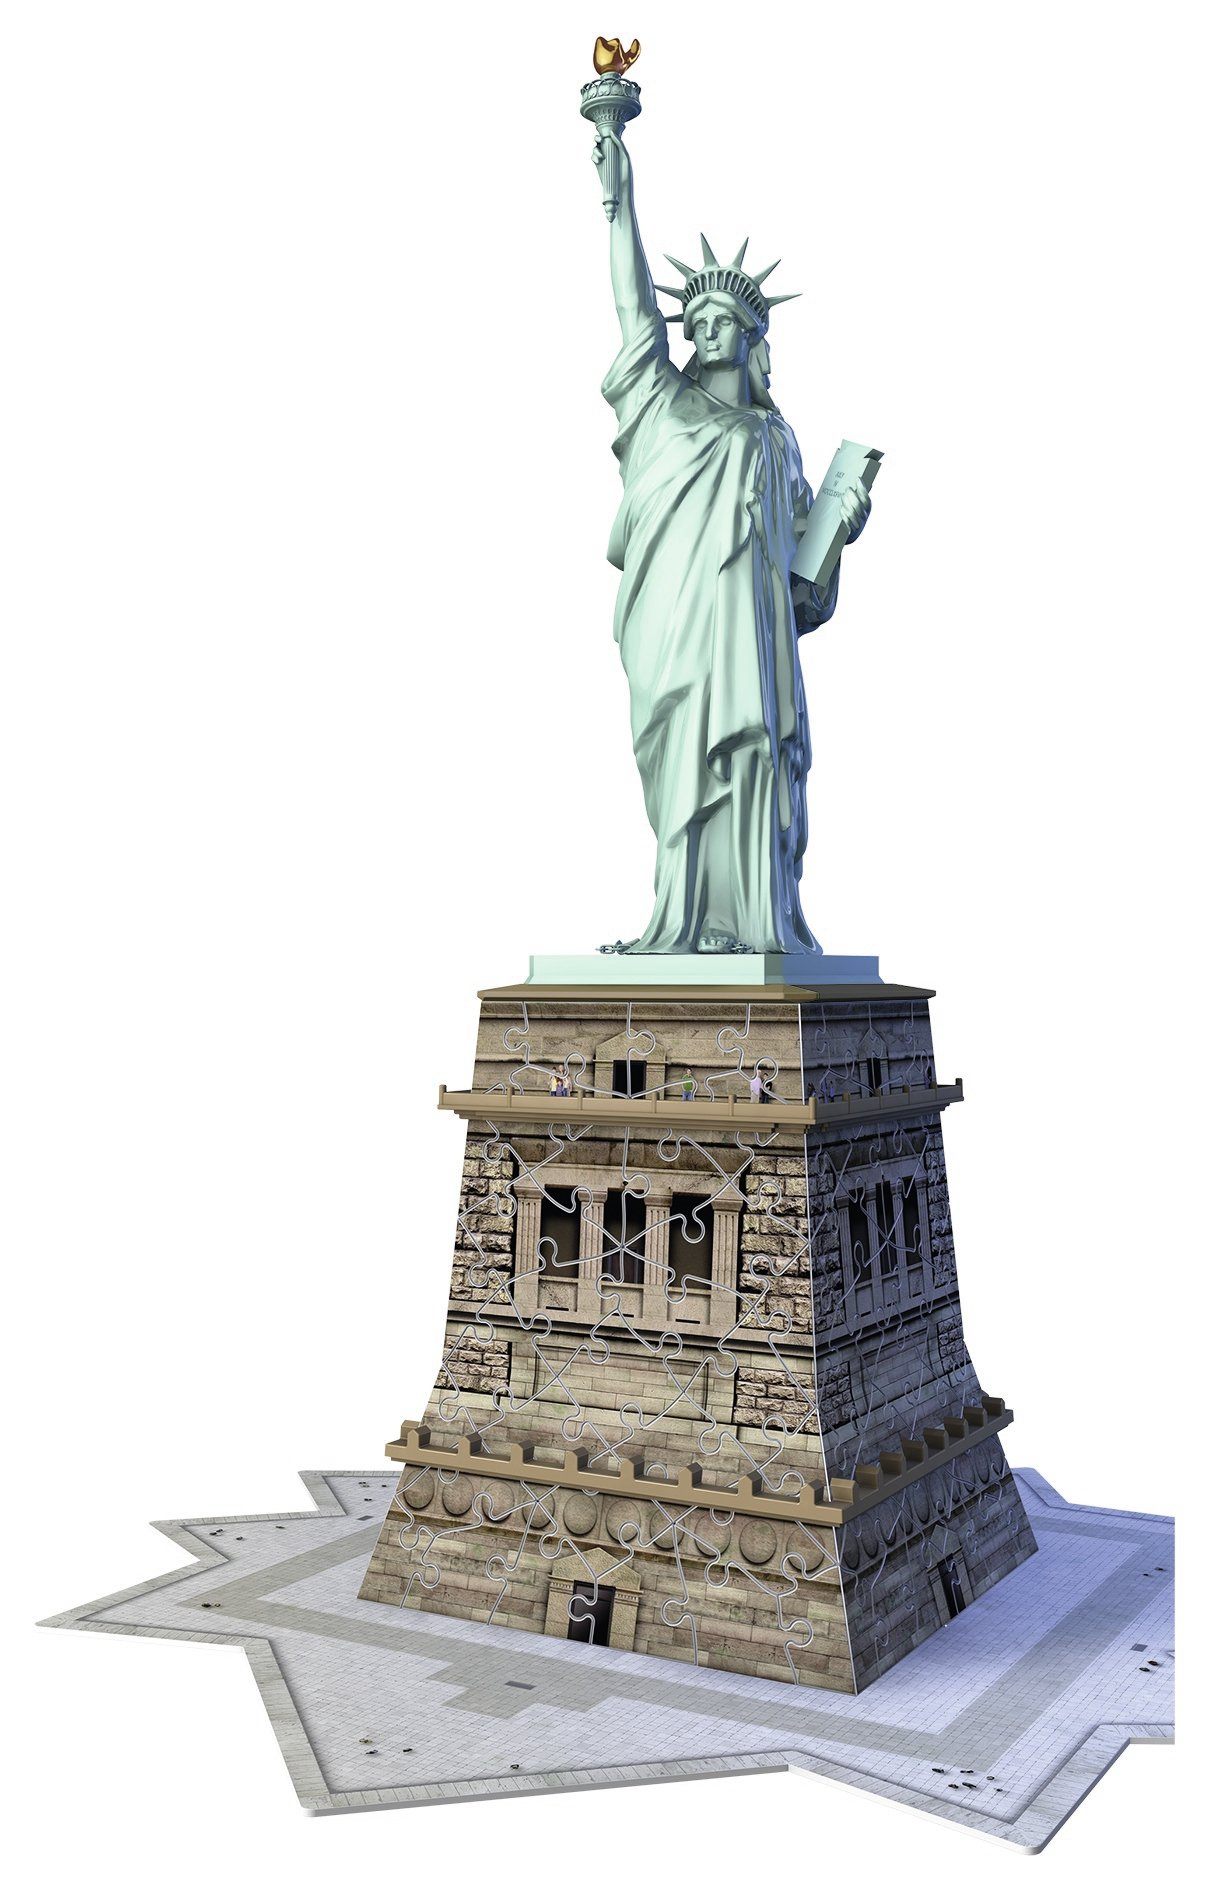 Ravensburger Statue of Liberty 108 Piece 3D Jigsaw Puzzle for Kids and Adults - Easy Click Technology Means Pieces Fit Together Perfectly